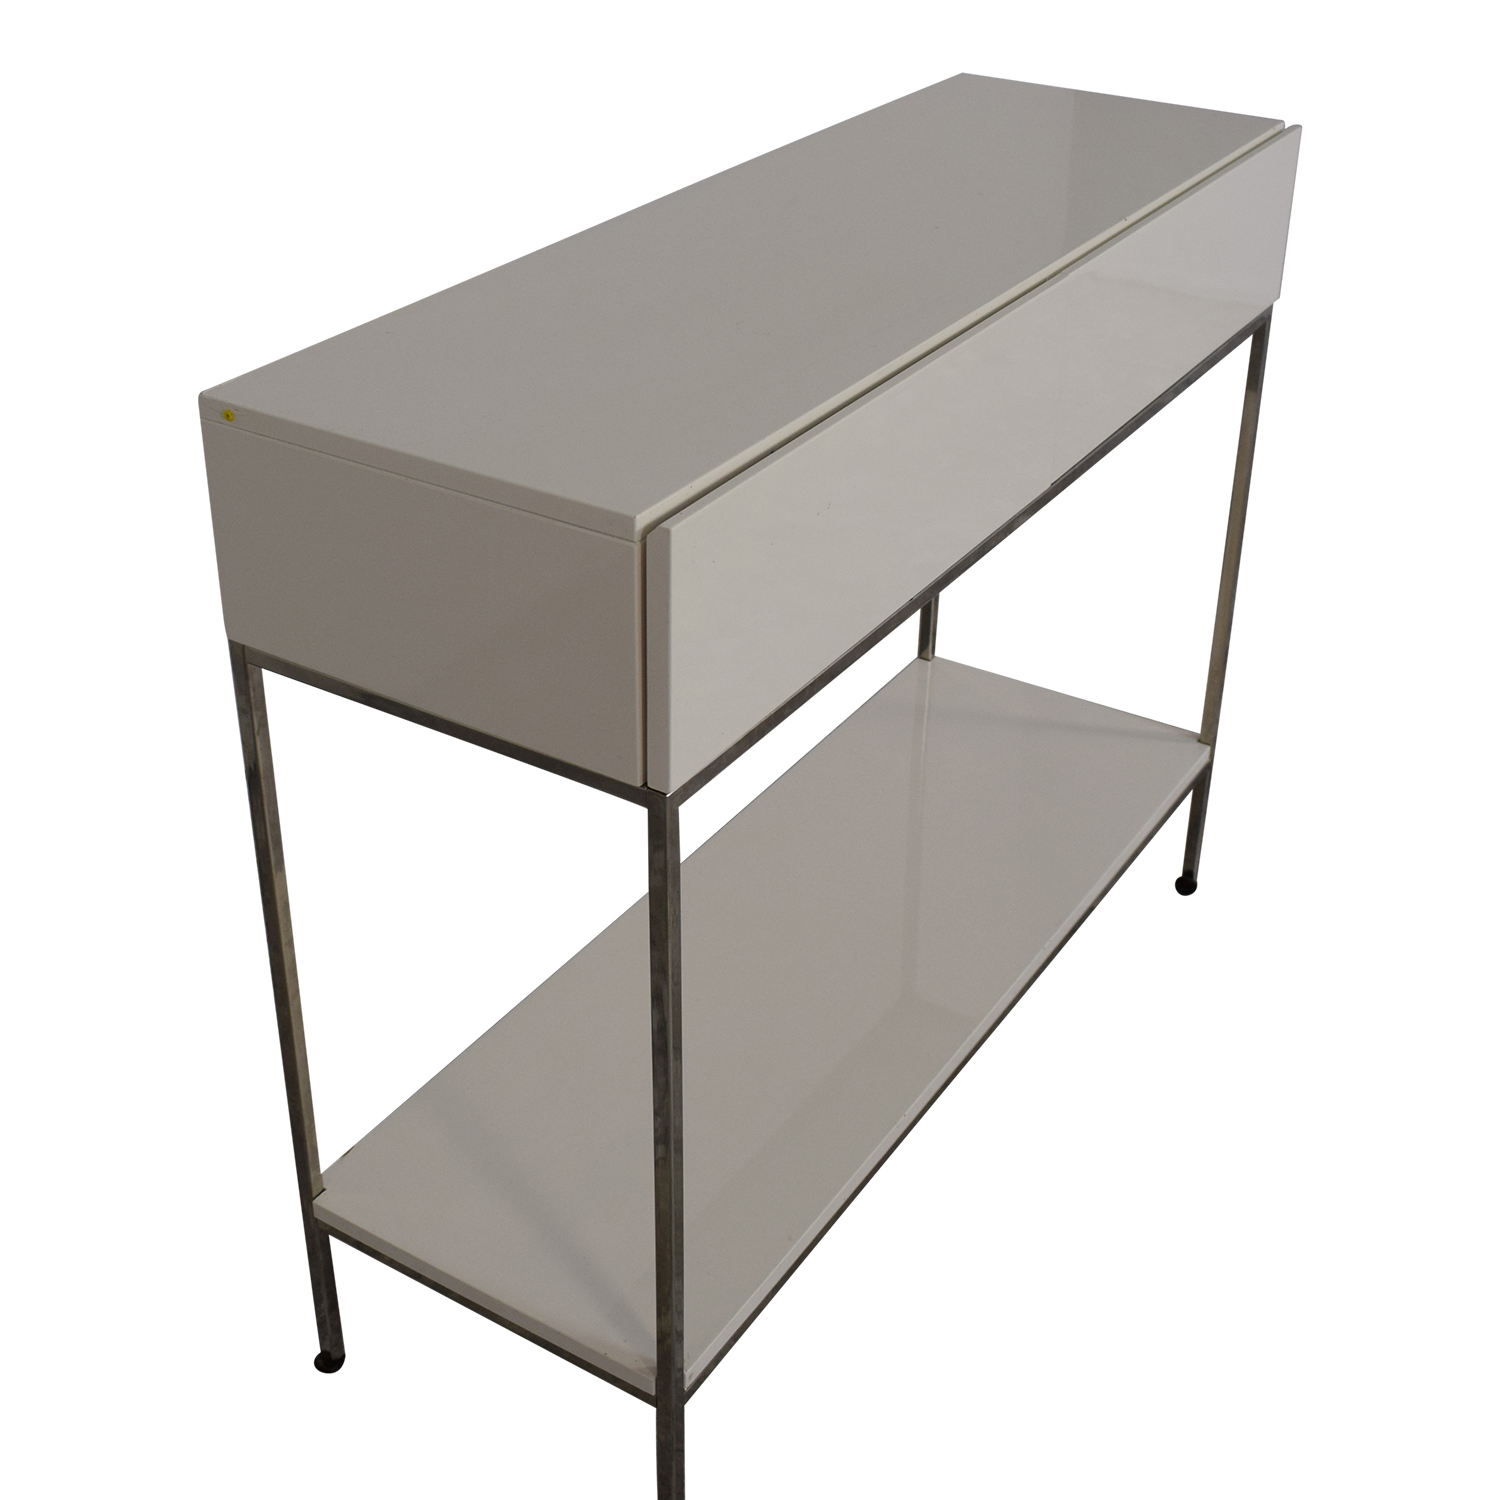 West Elm West Elm Lacquer Storage Console used